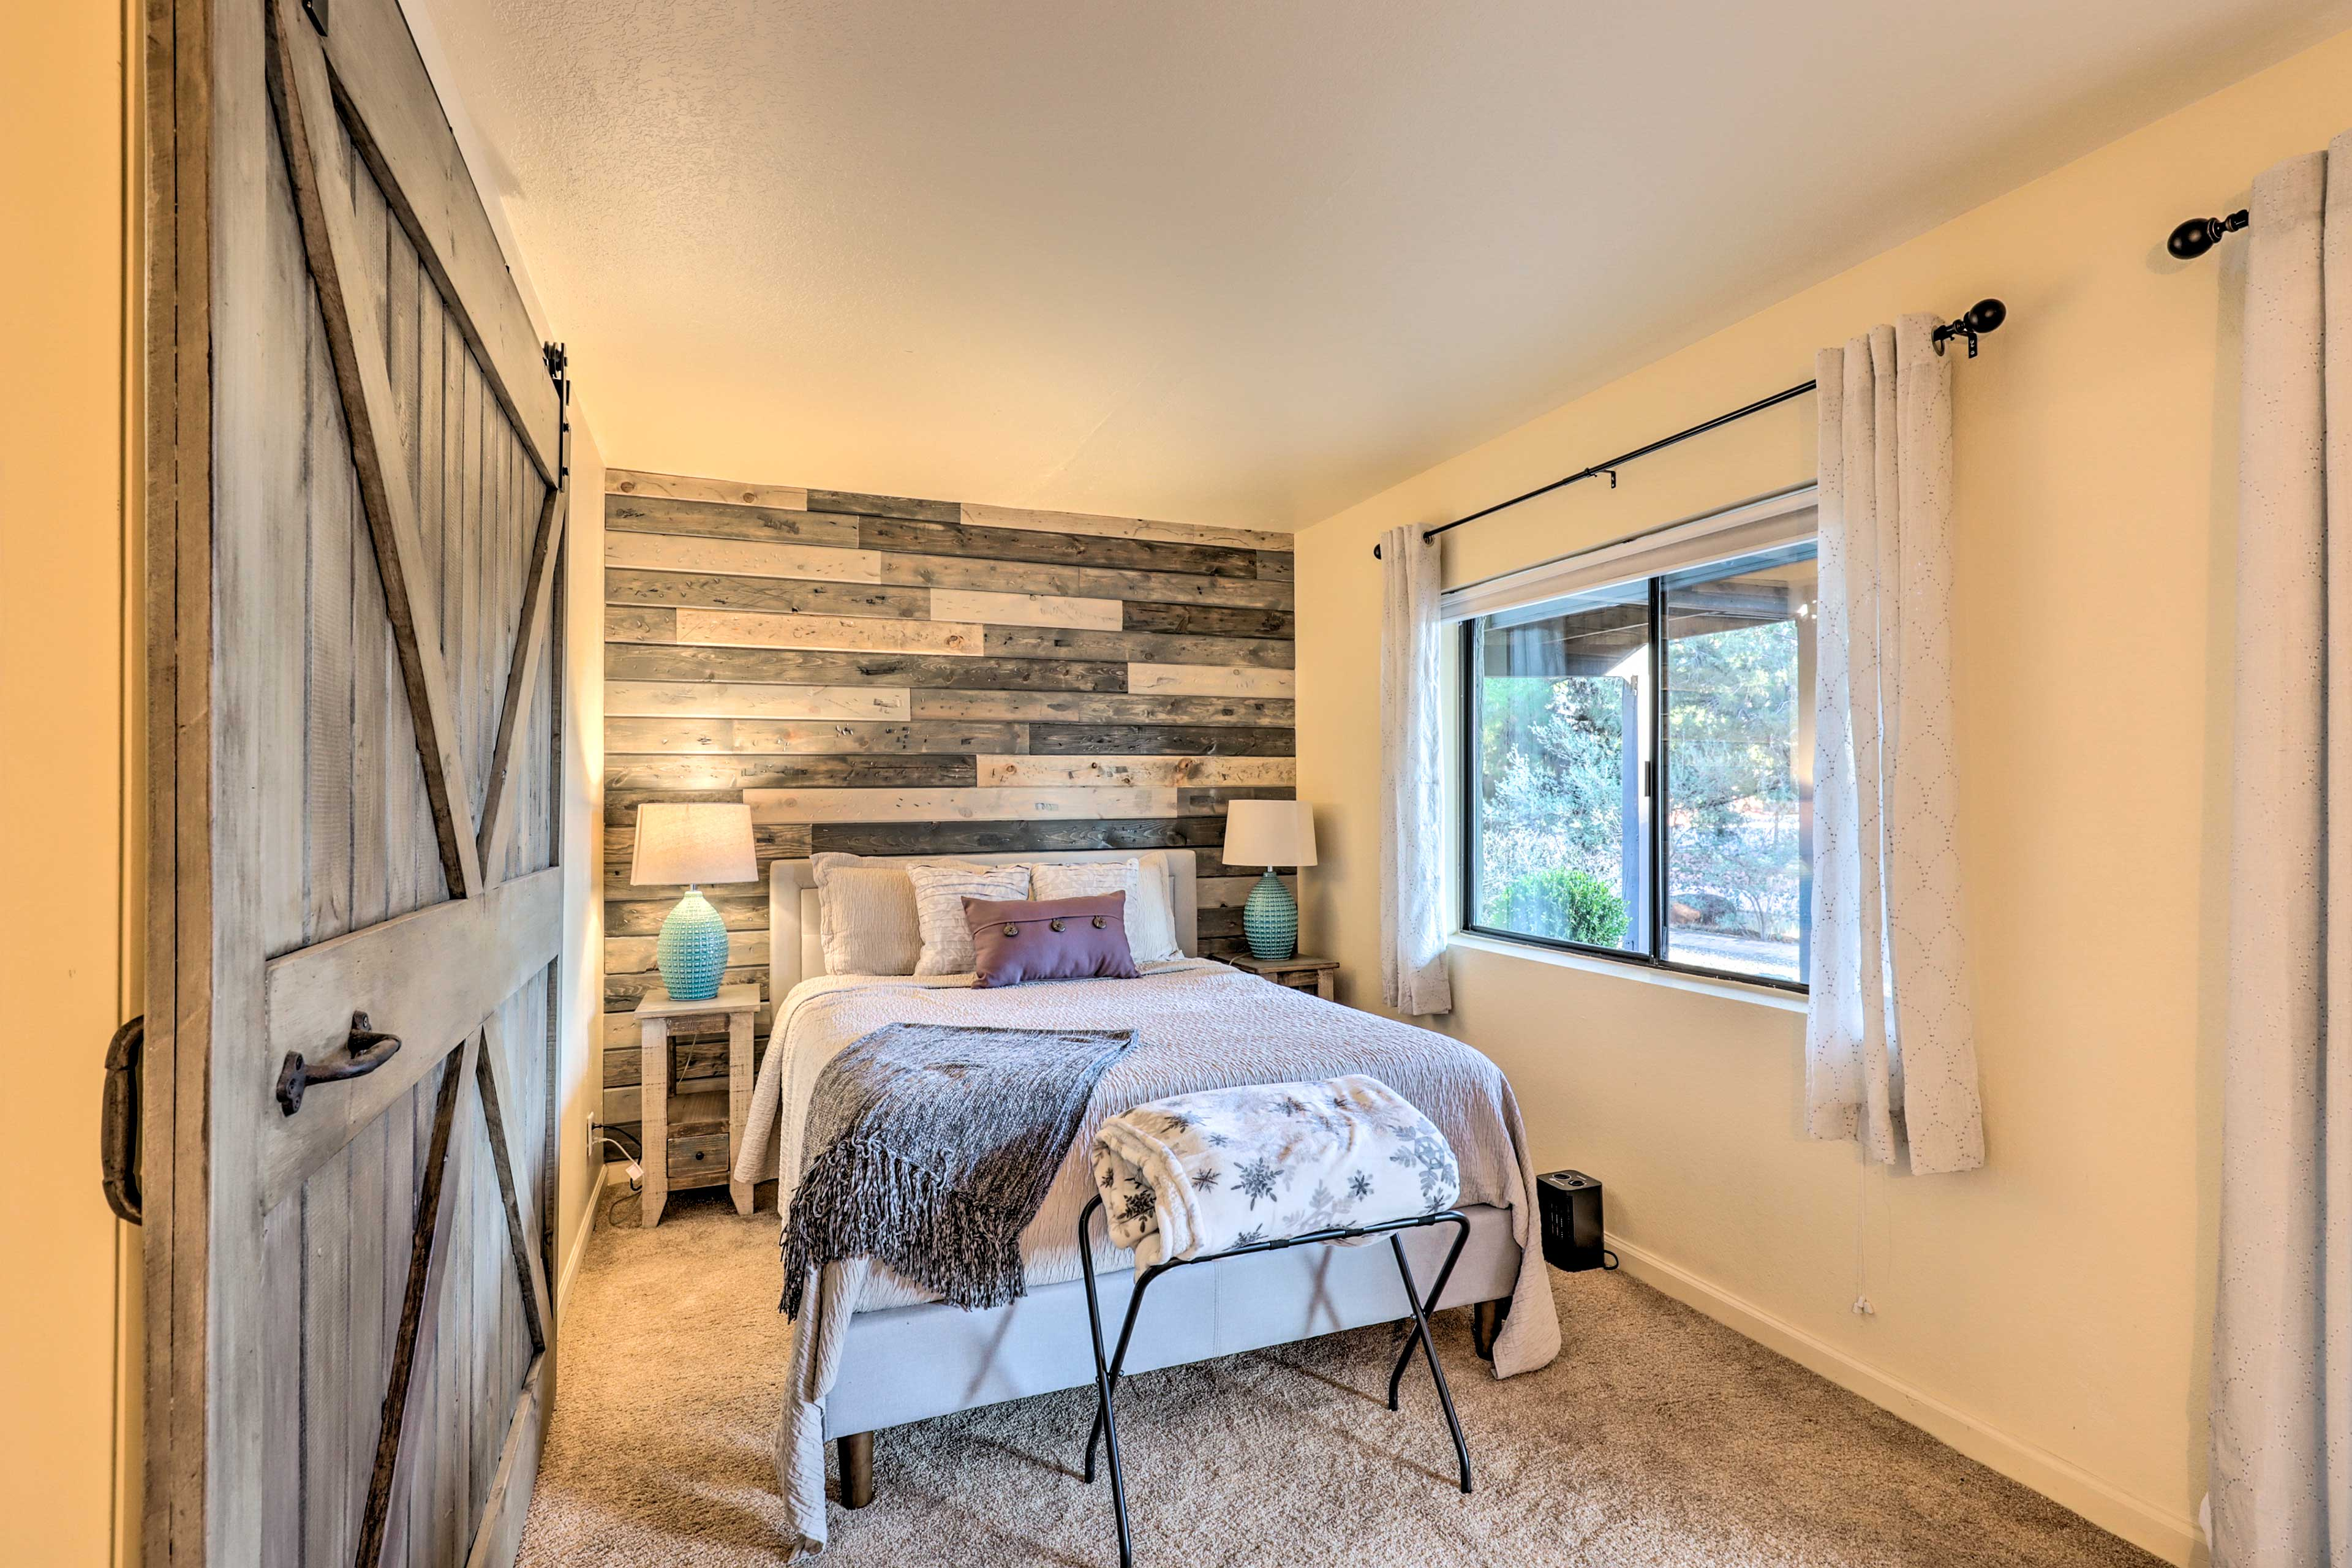 Bedroom 2 features a wood accent wall and a queen memory foam mattress.